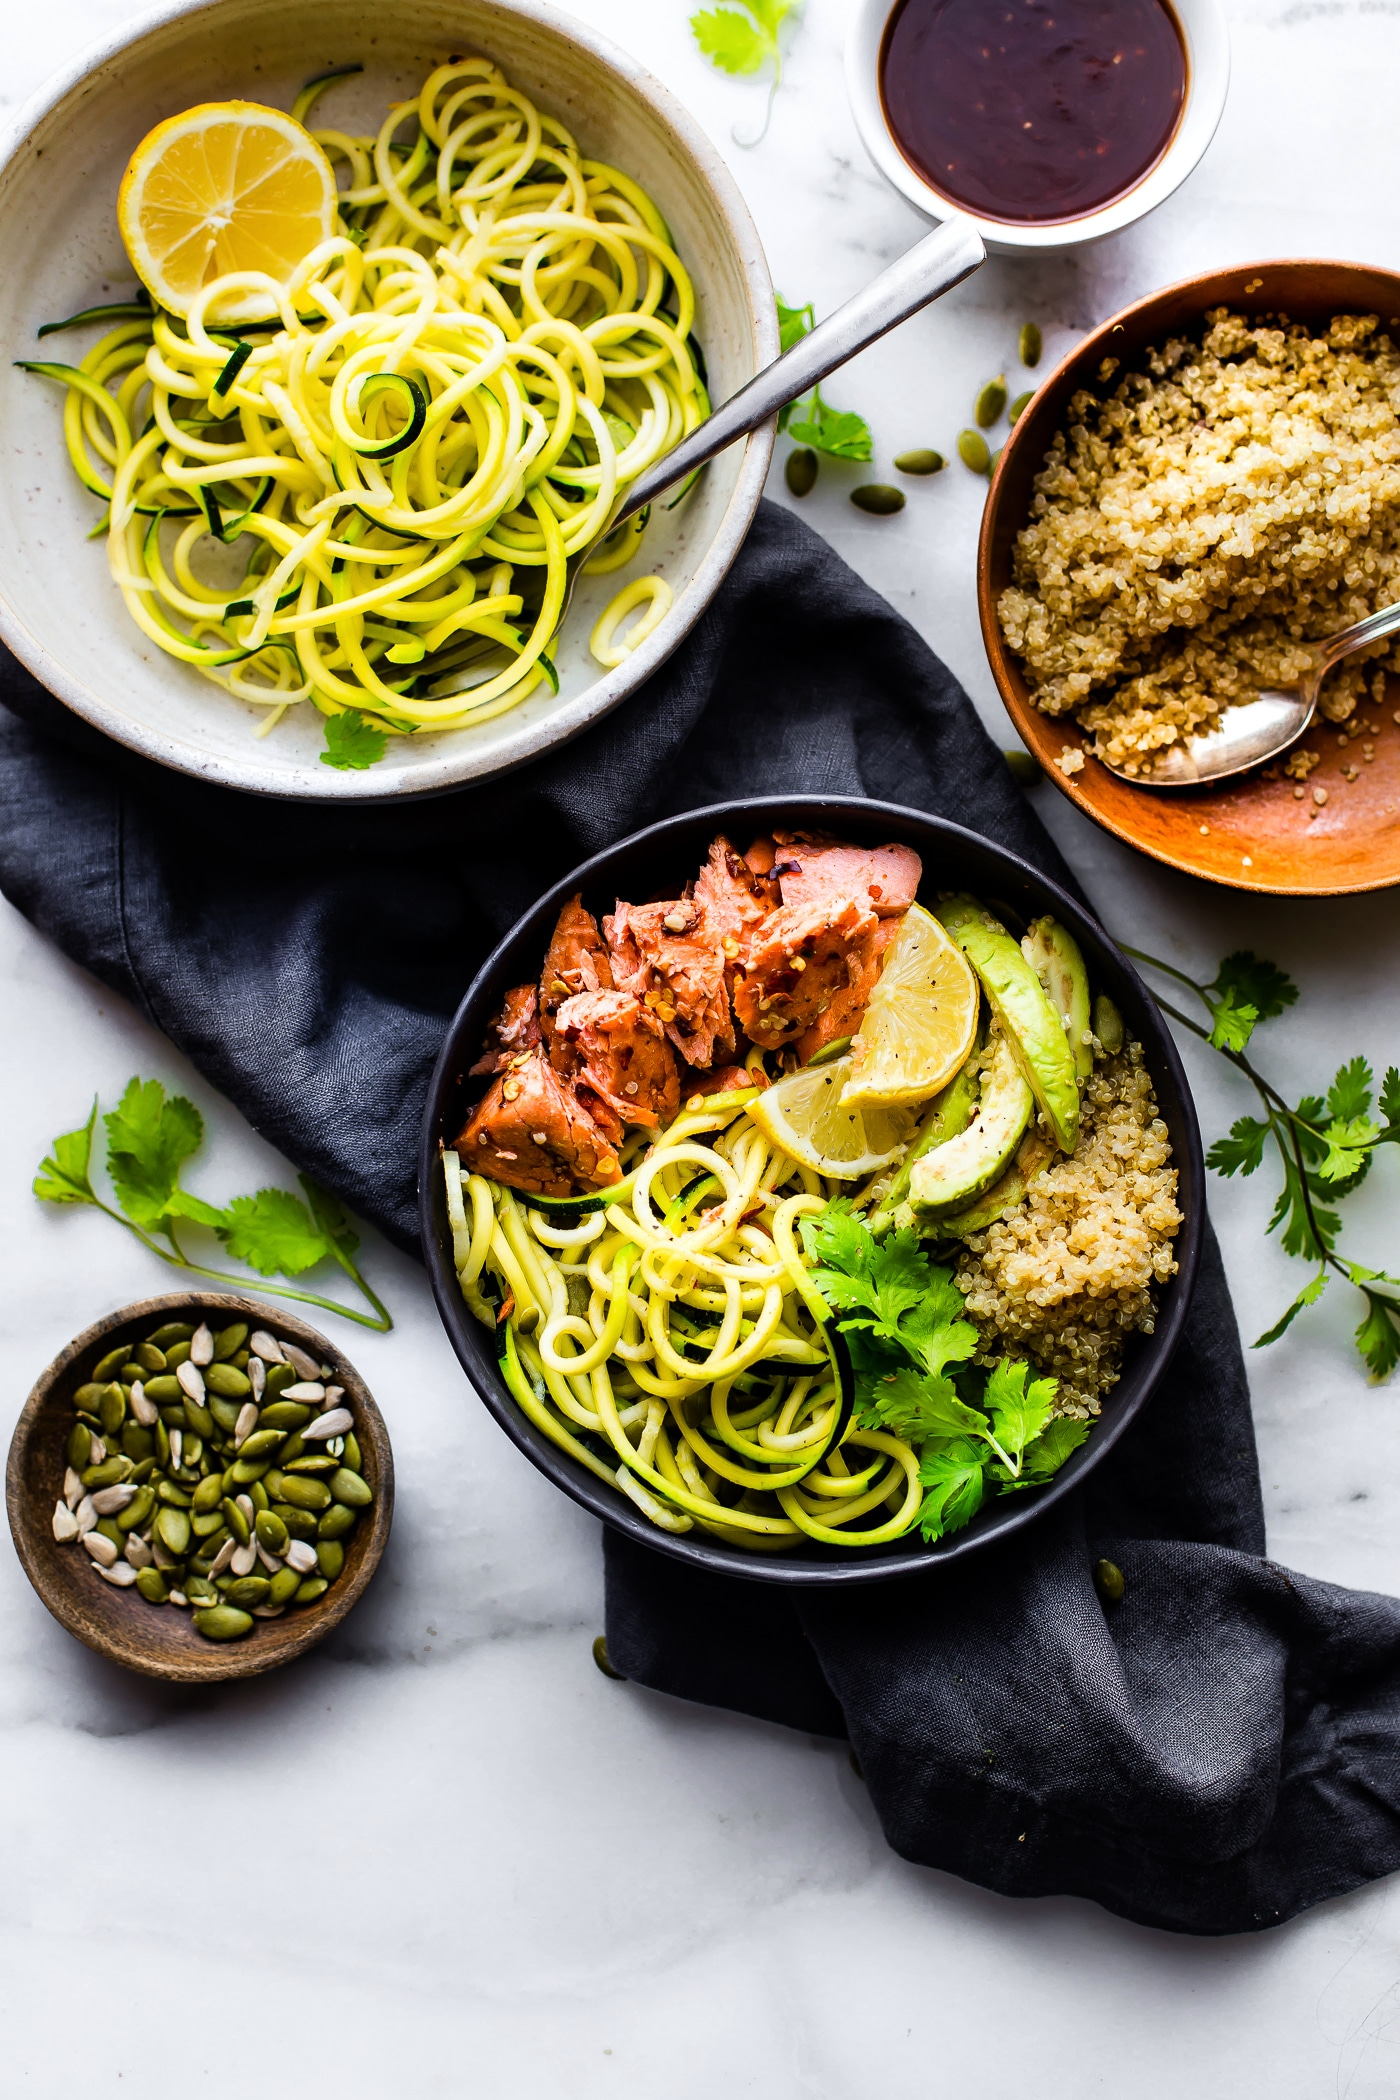 These Honey BBQ Baked Salmon Bowls are the perfect meal prep recipe for a make ahead lunch or quick dinner. Protein Packed, Gluten Free, and Dairy Free. A healthy meal ready in 30 minutes!